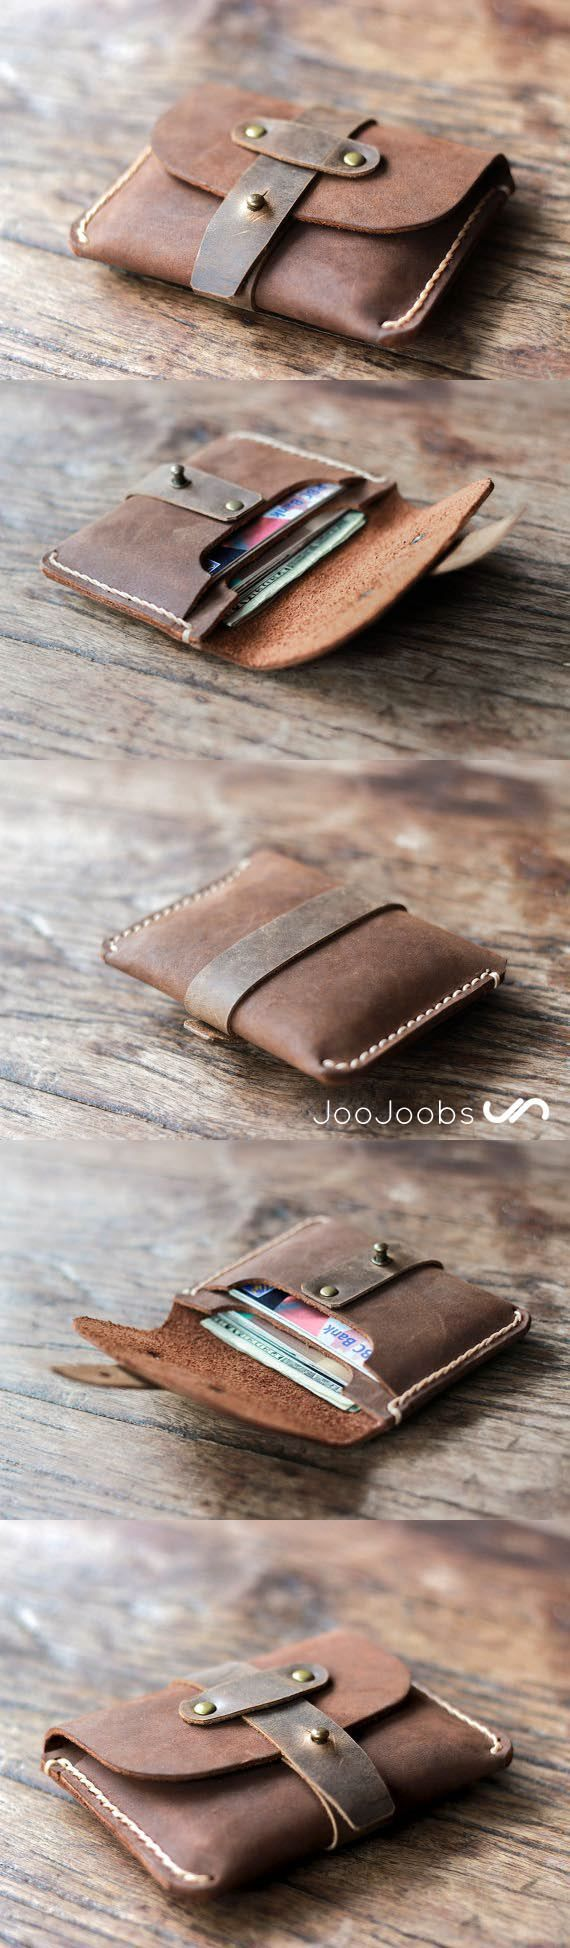 79e477791821a5 The Treasure Chest Credit Card wallet trended on Etsy for many, many  months. Its